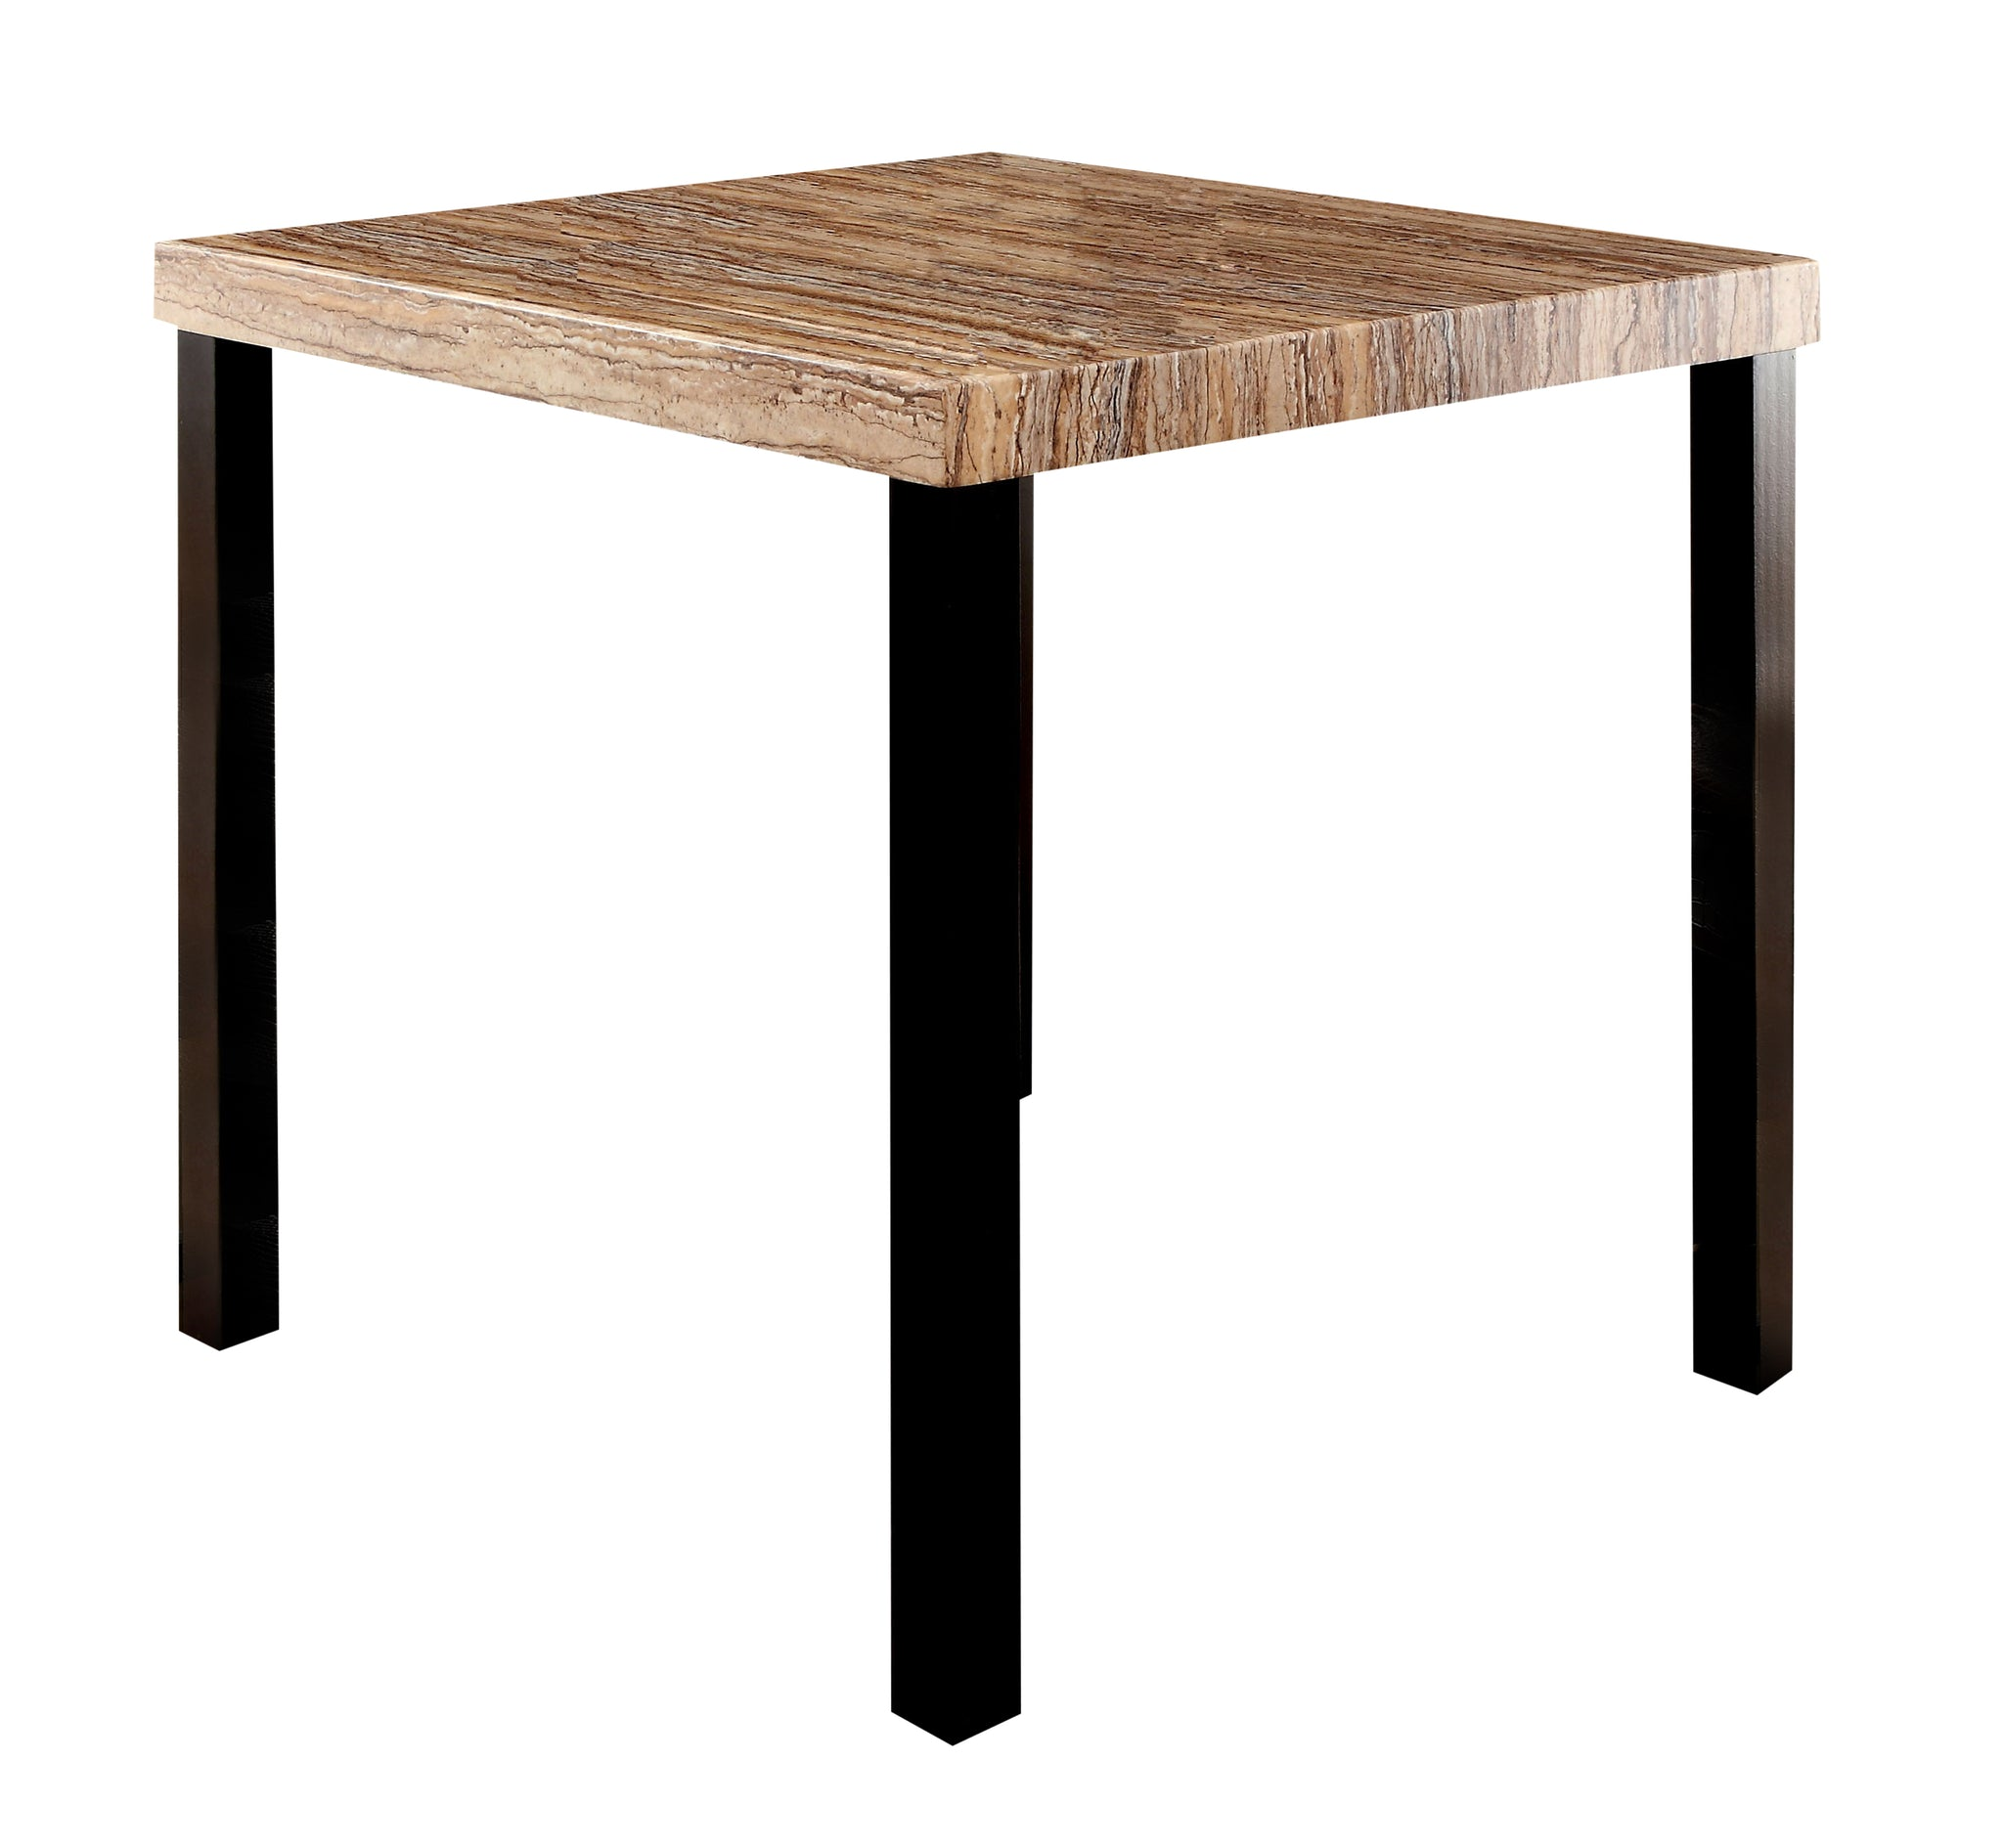 Altadita Contemporary Counter Height Table - HD Furniture